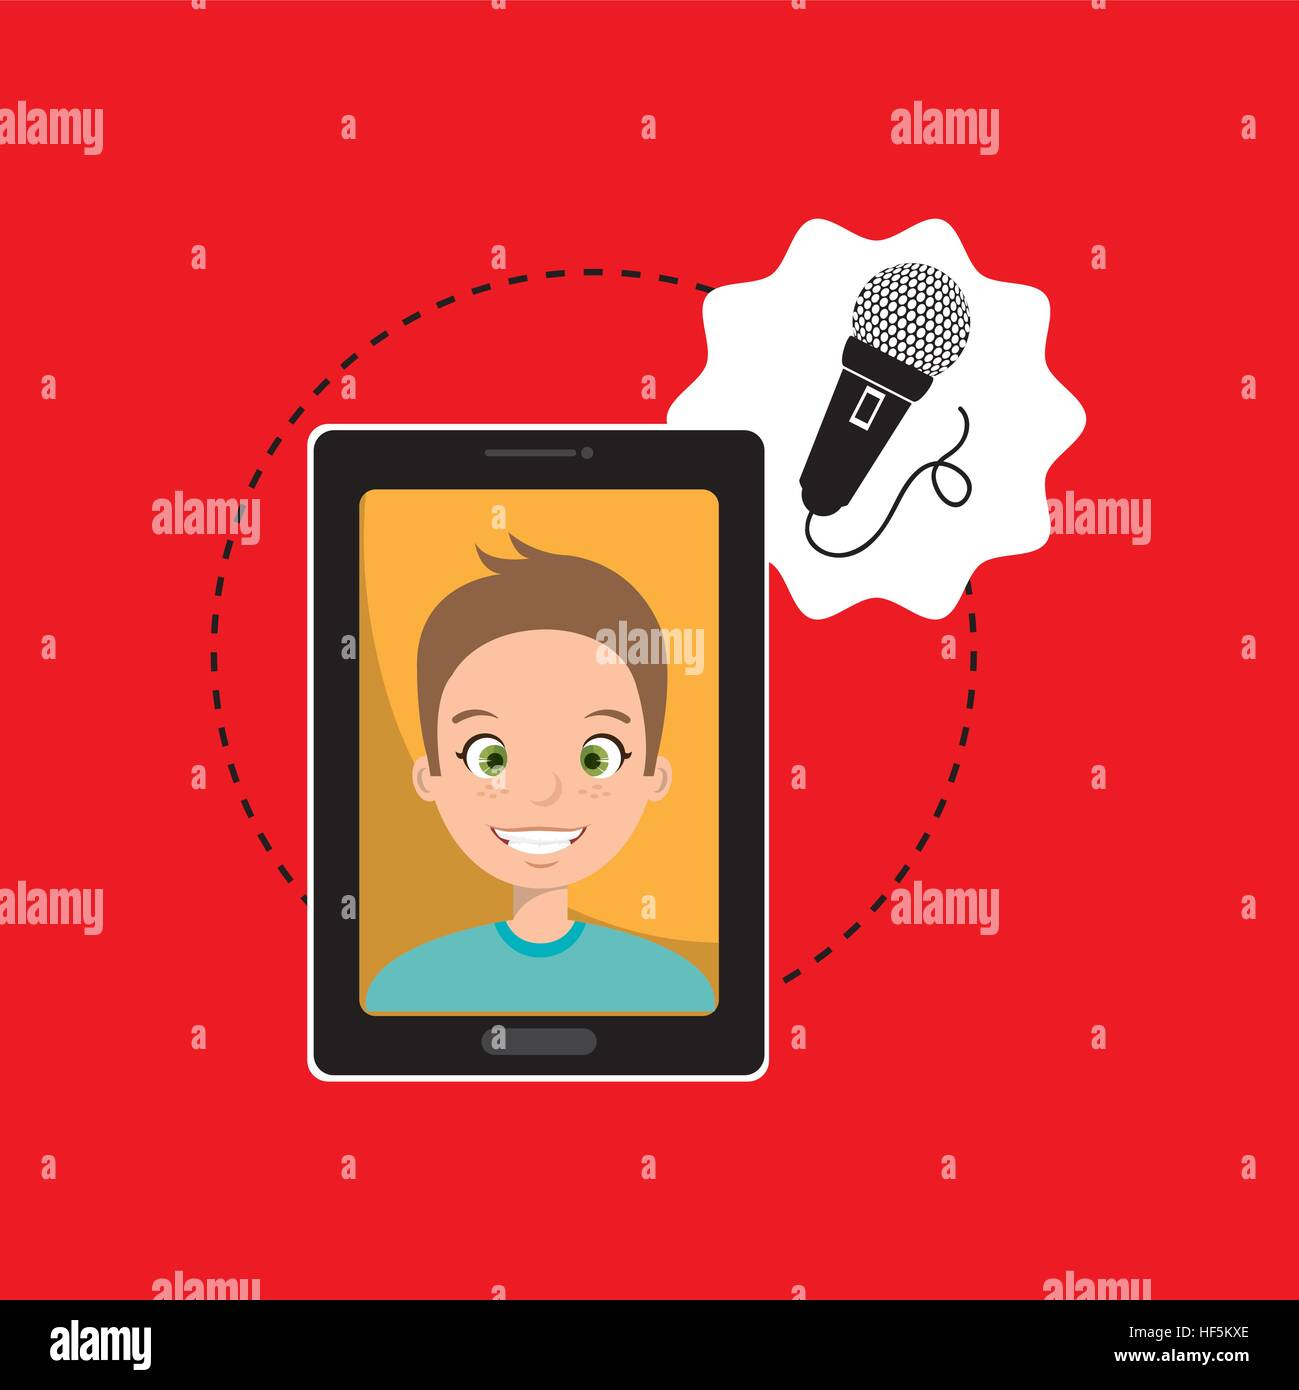 man cartoon smartphone microphone red background vector illustration eps 10 Stock Vector